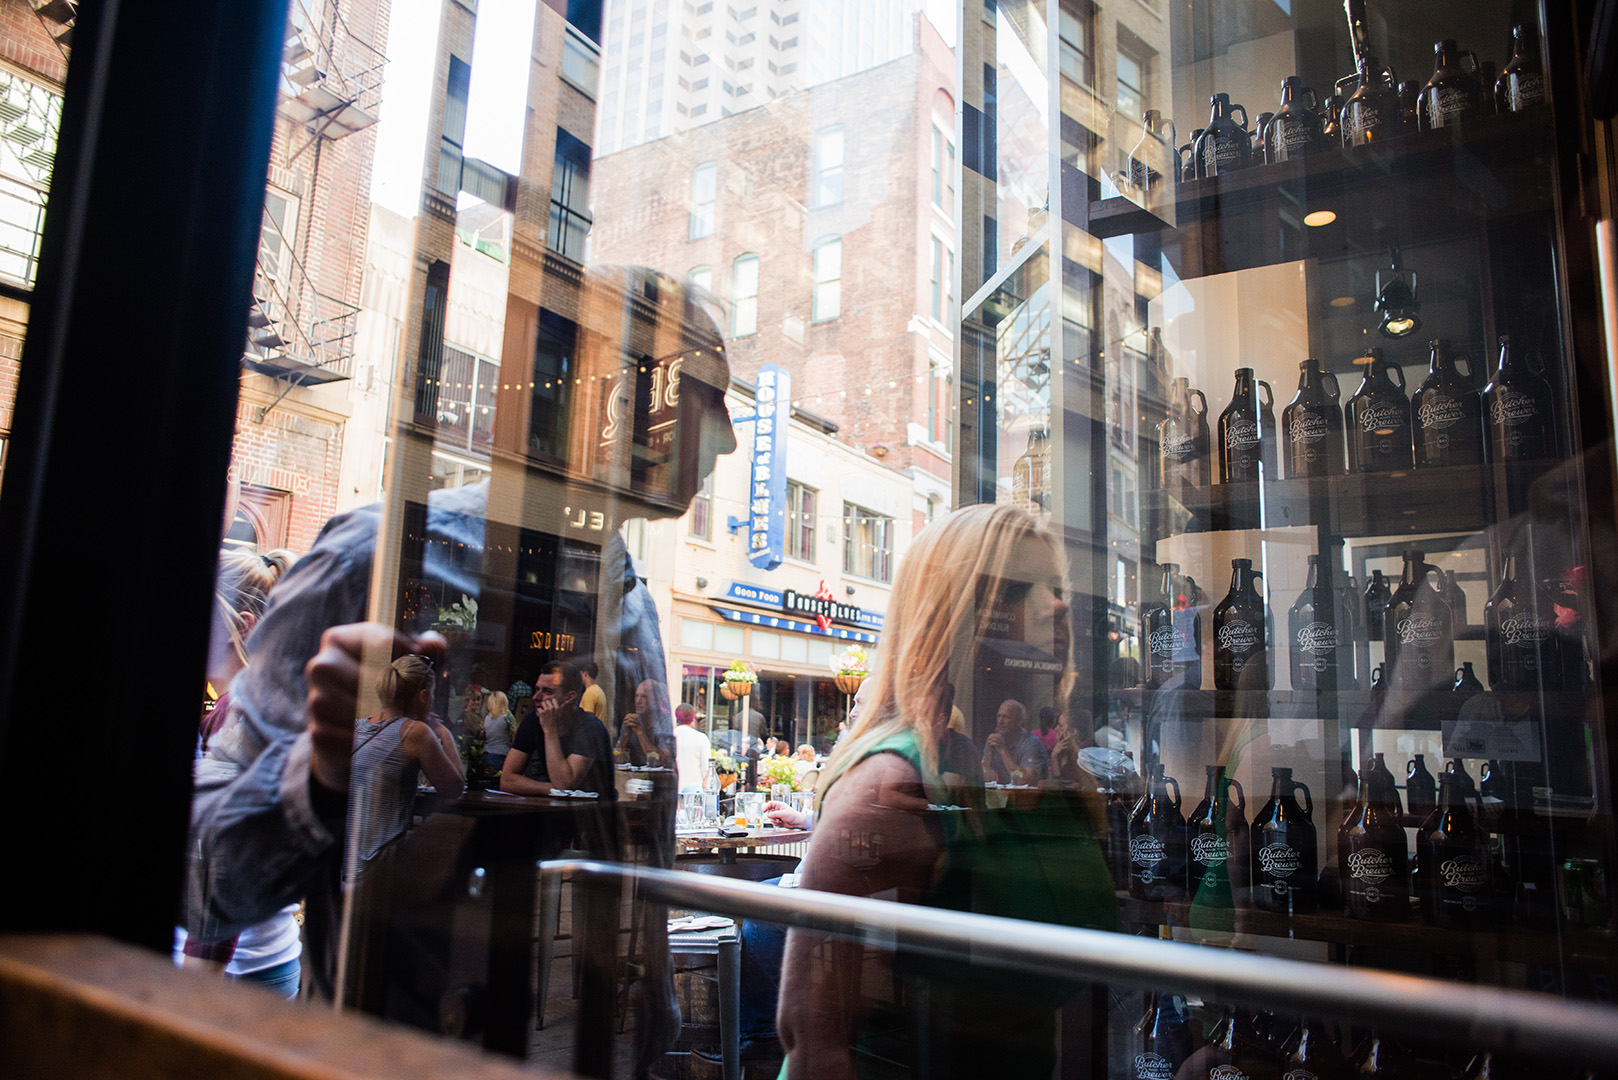 Patrons enter Butcher and Brewer on June 29 in downtown Cleveland, Ohio. (Dustin Franz/The Washington Post)